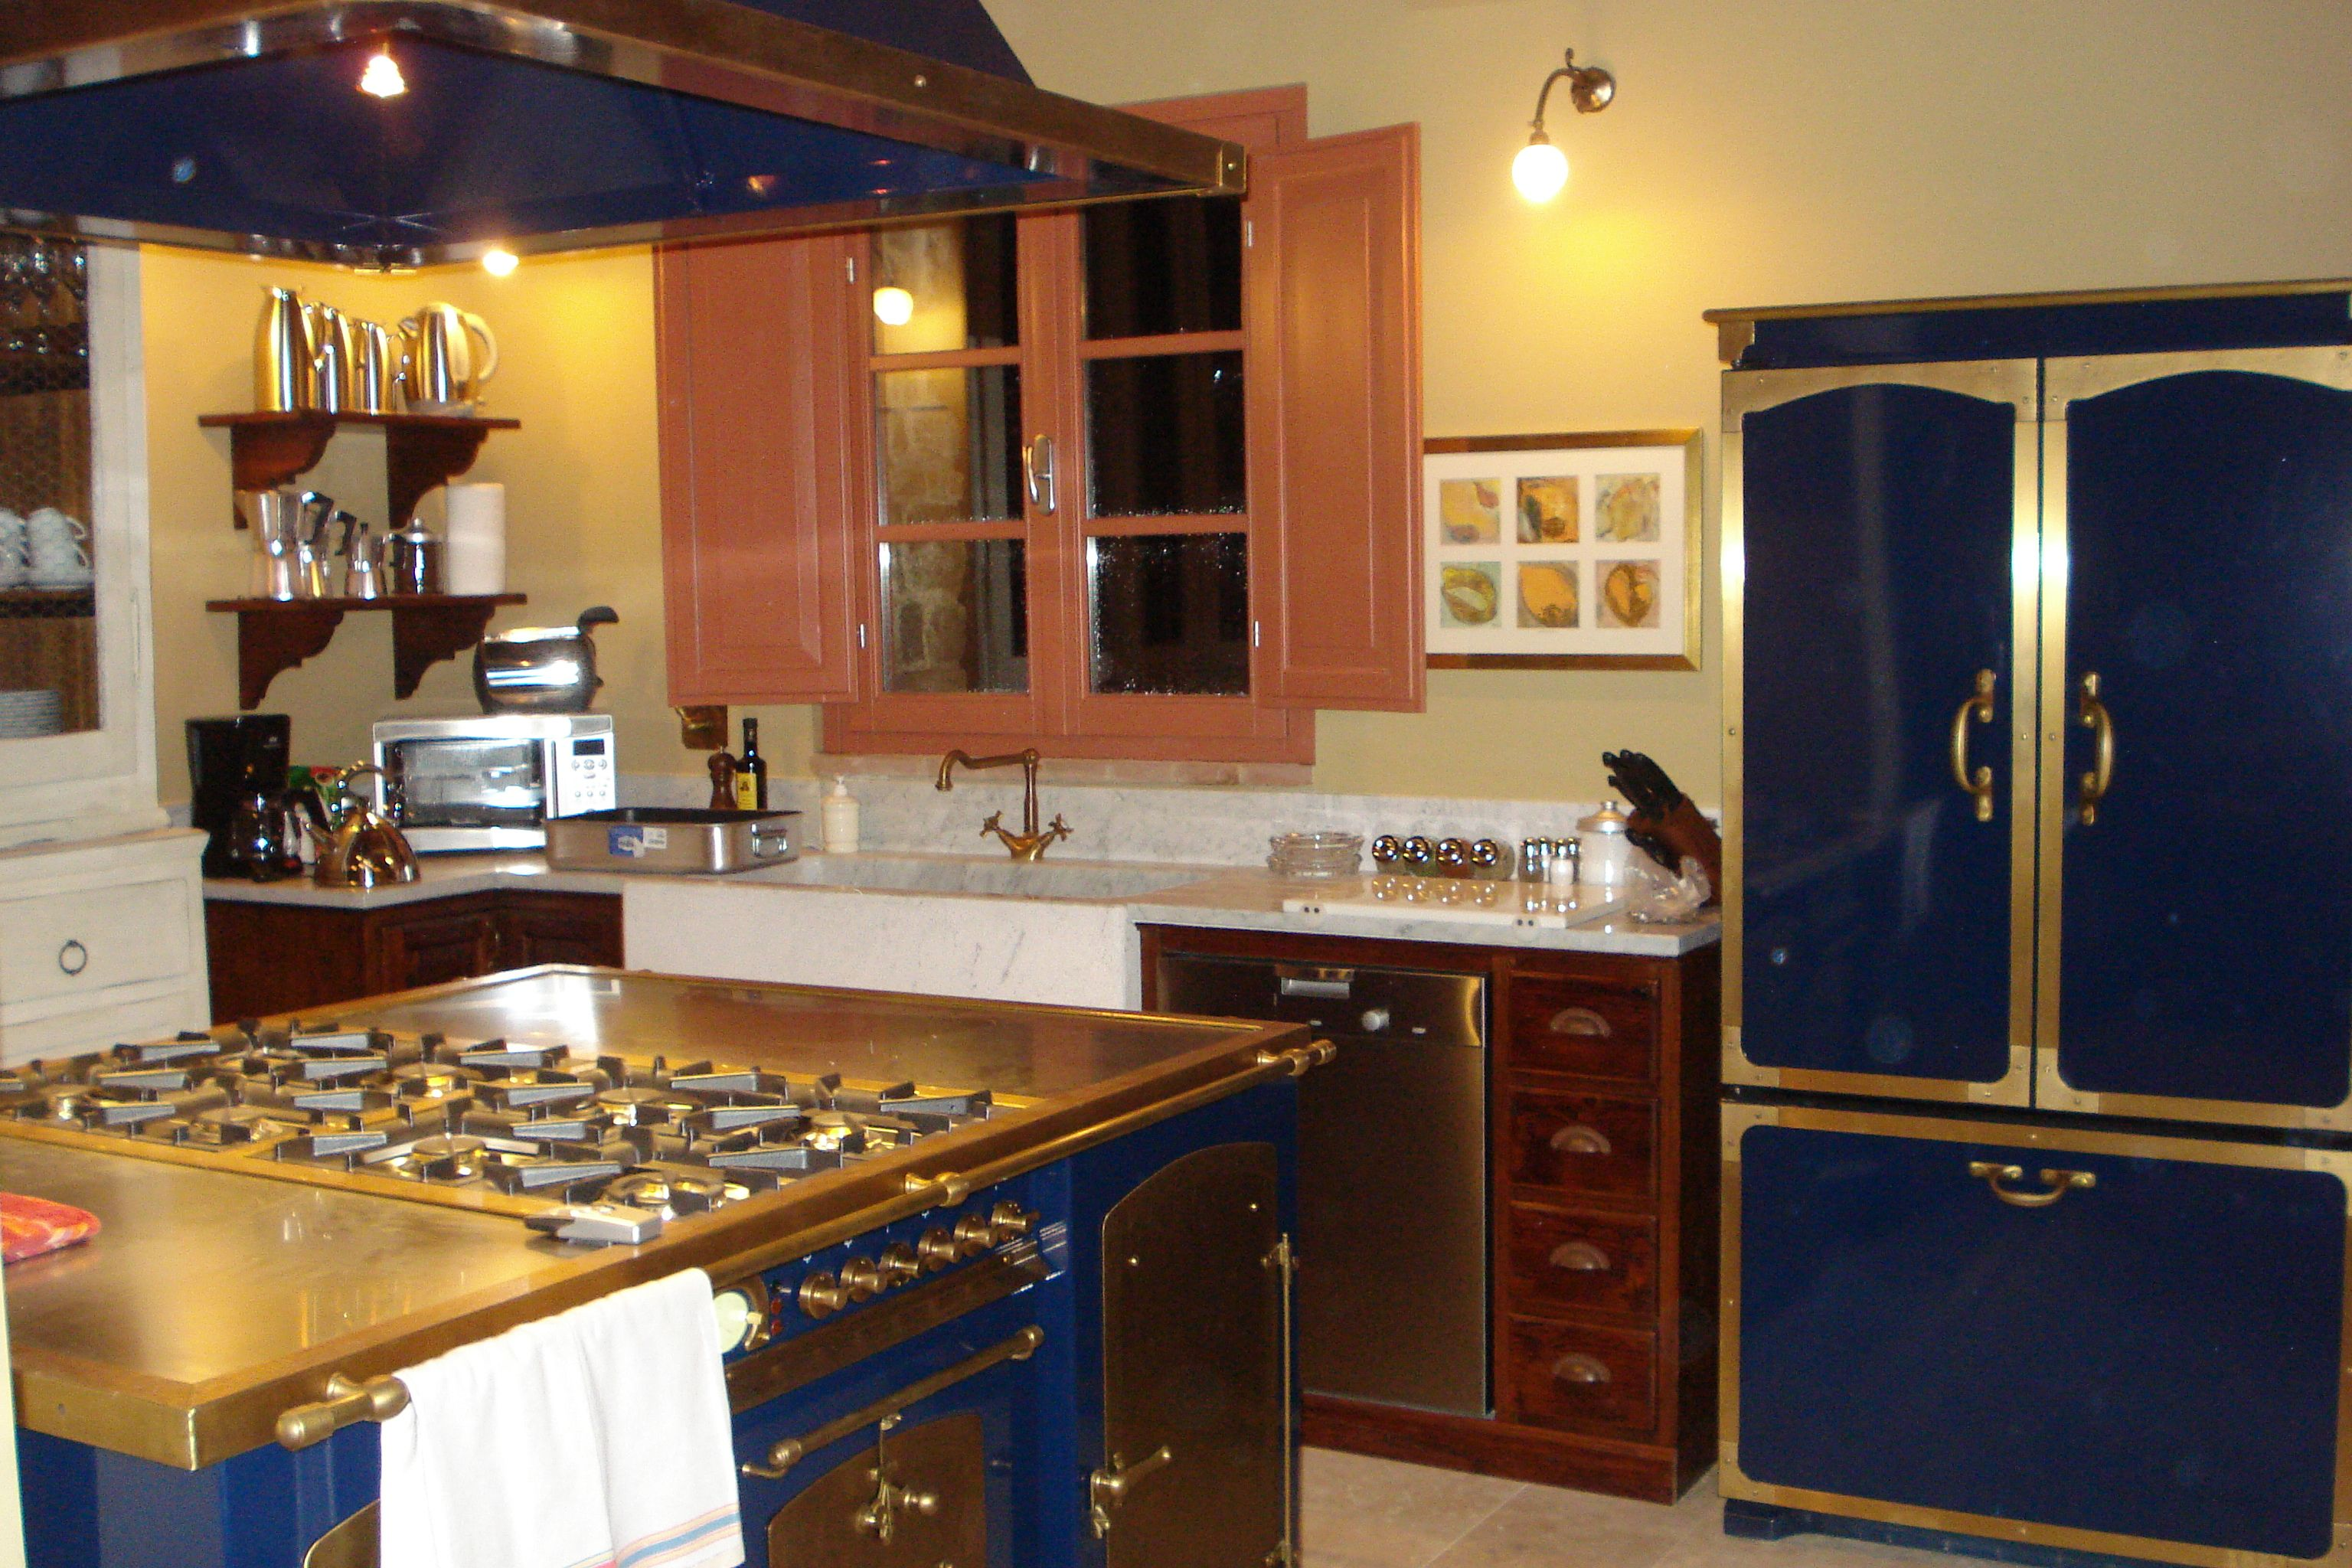 Italian casita farmhouse kitchen with navy and gold appliances